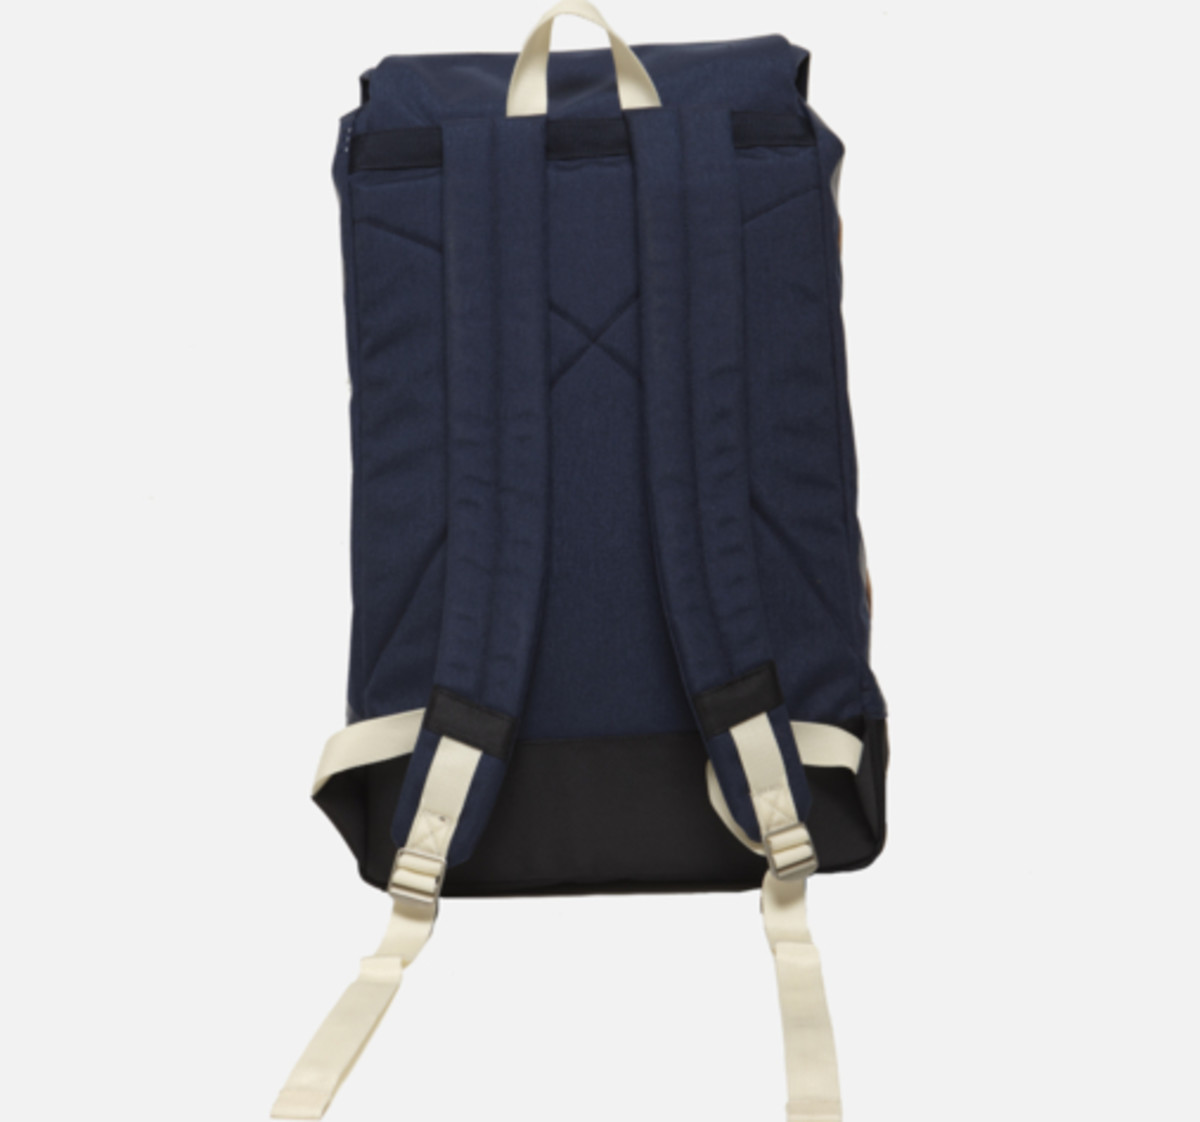 division-day-pack-navy-02